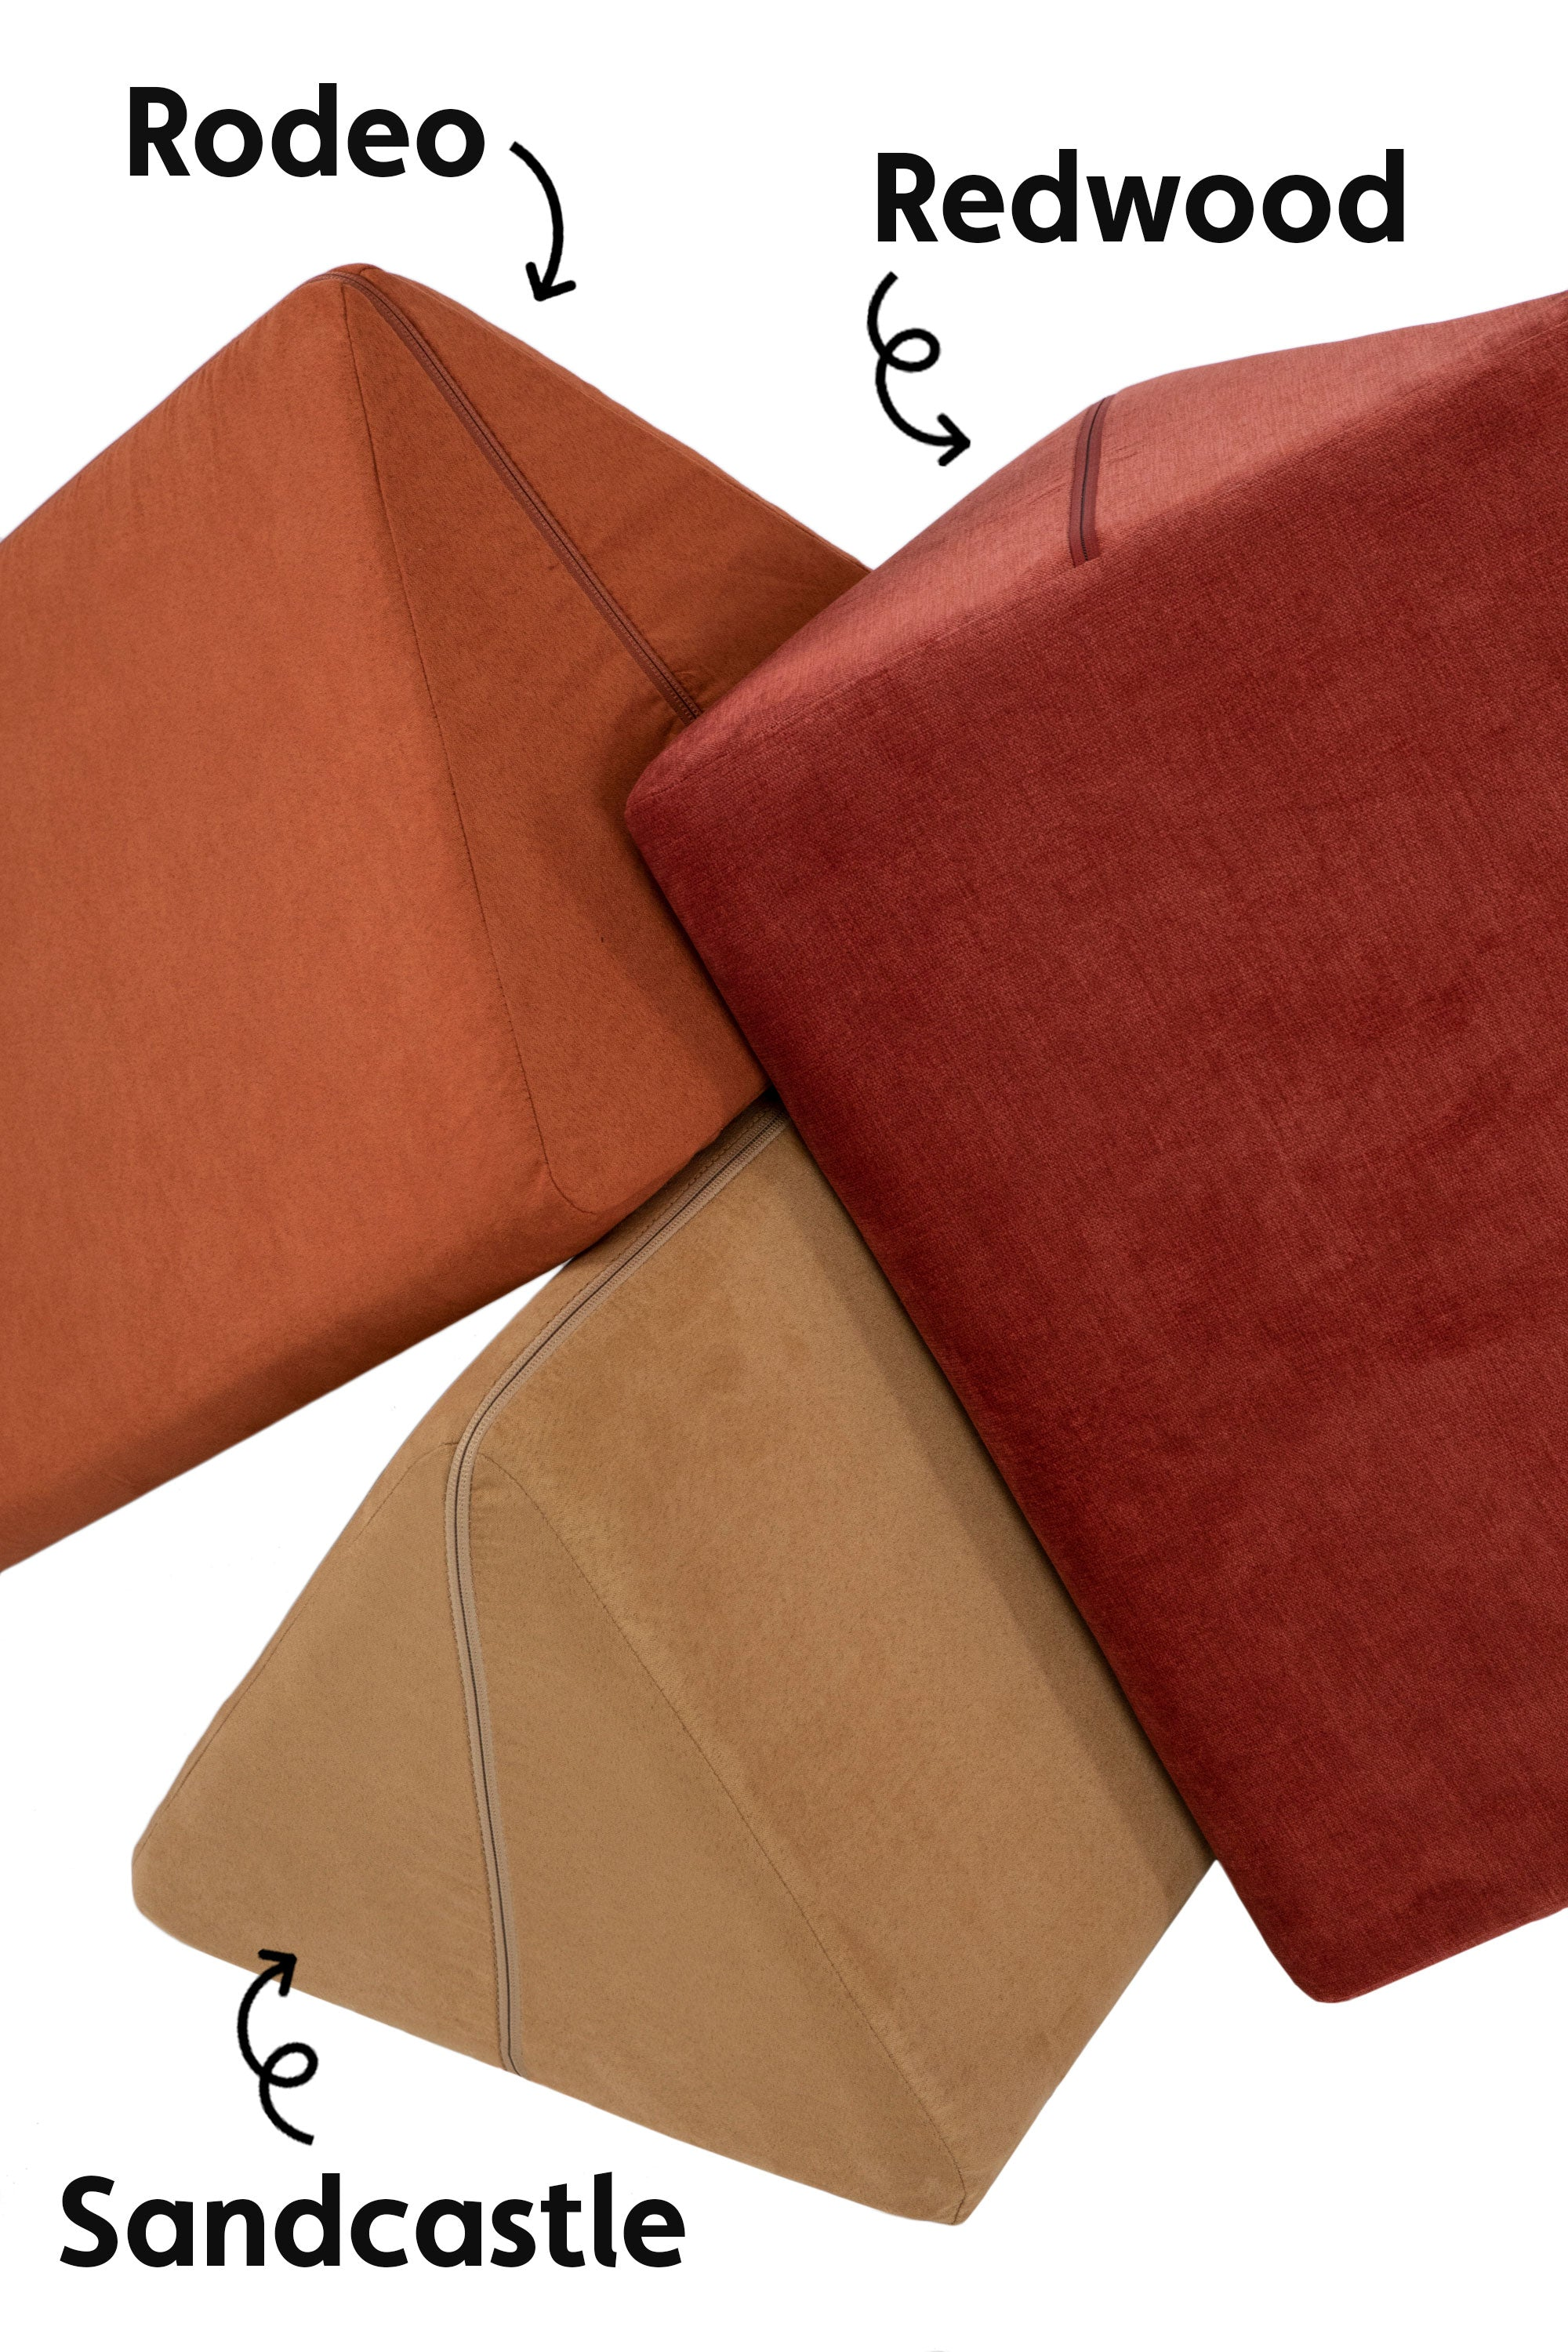 Three Nugget pillows stacked up to show a color comparison: Rodeo, Sandcastle, and Redwood, from left to right.